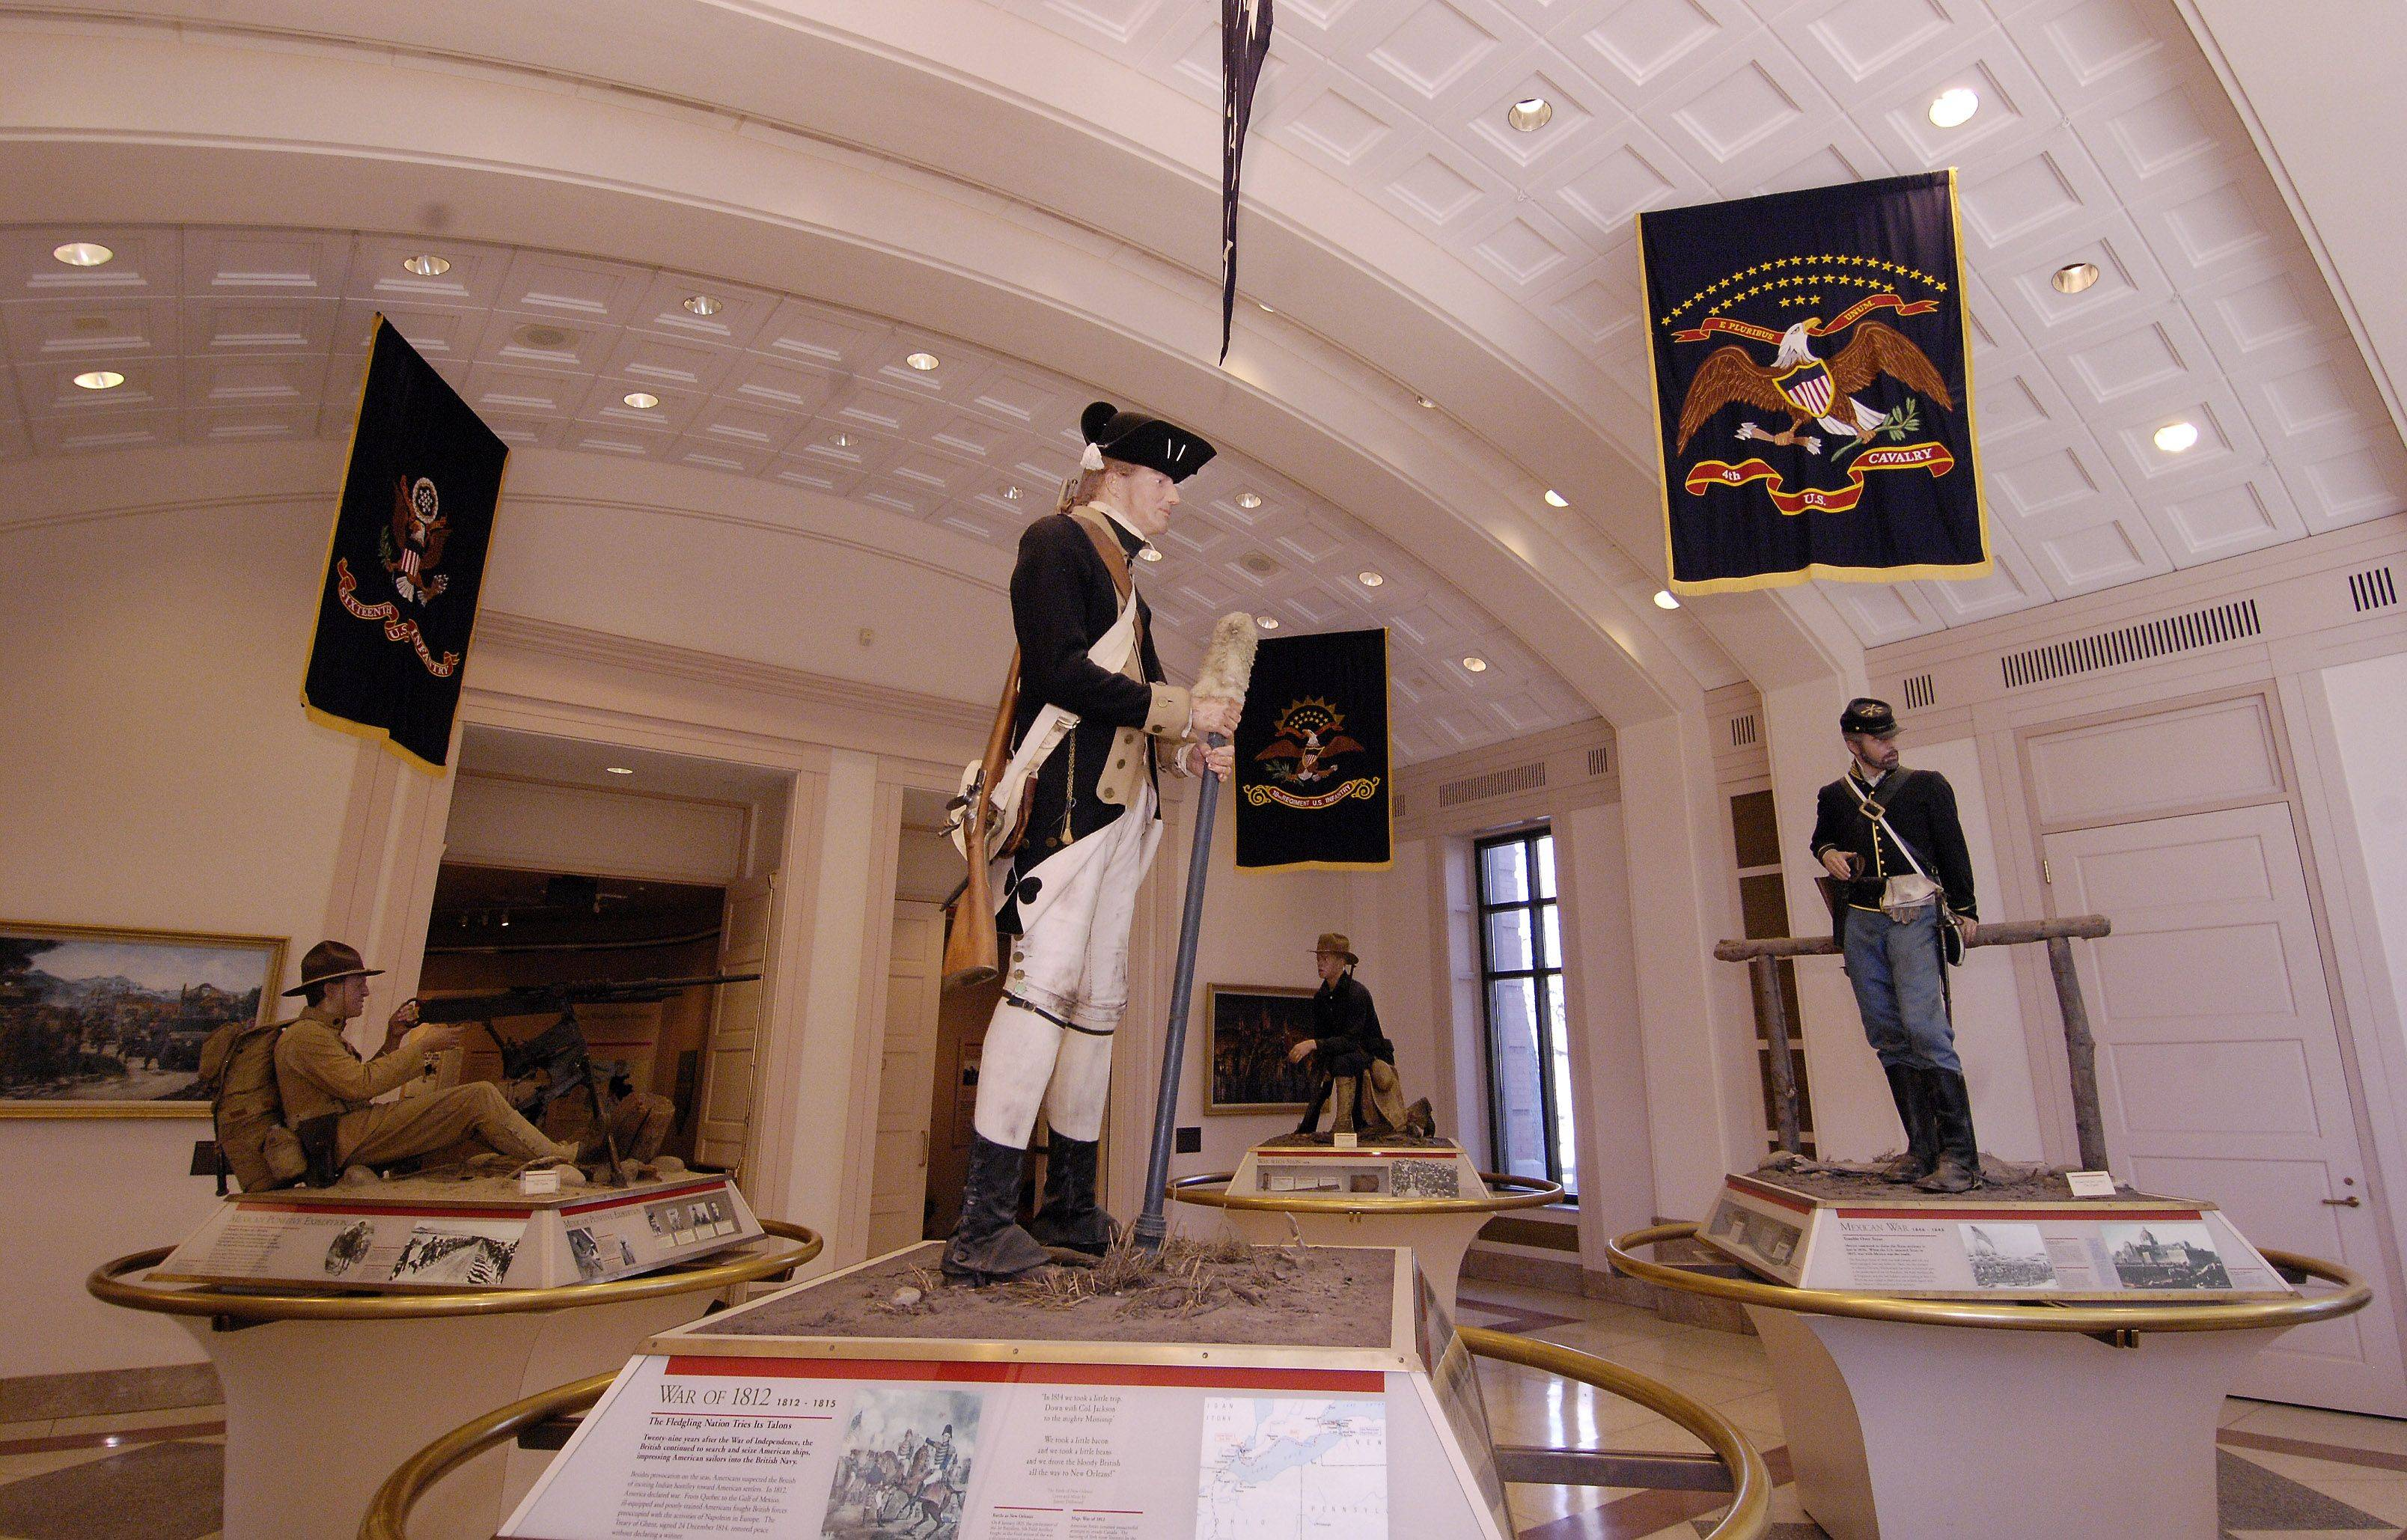 Displays of the predecessors to the 1st Division dating back to the revolutionary war, at the 1st Division Museum at Cantigny Park in Wheaton.